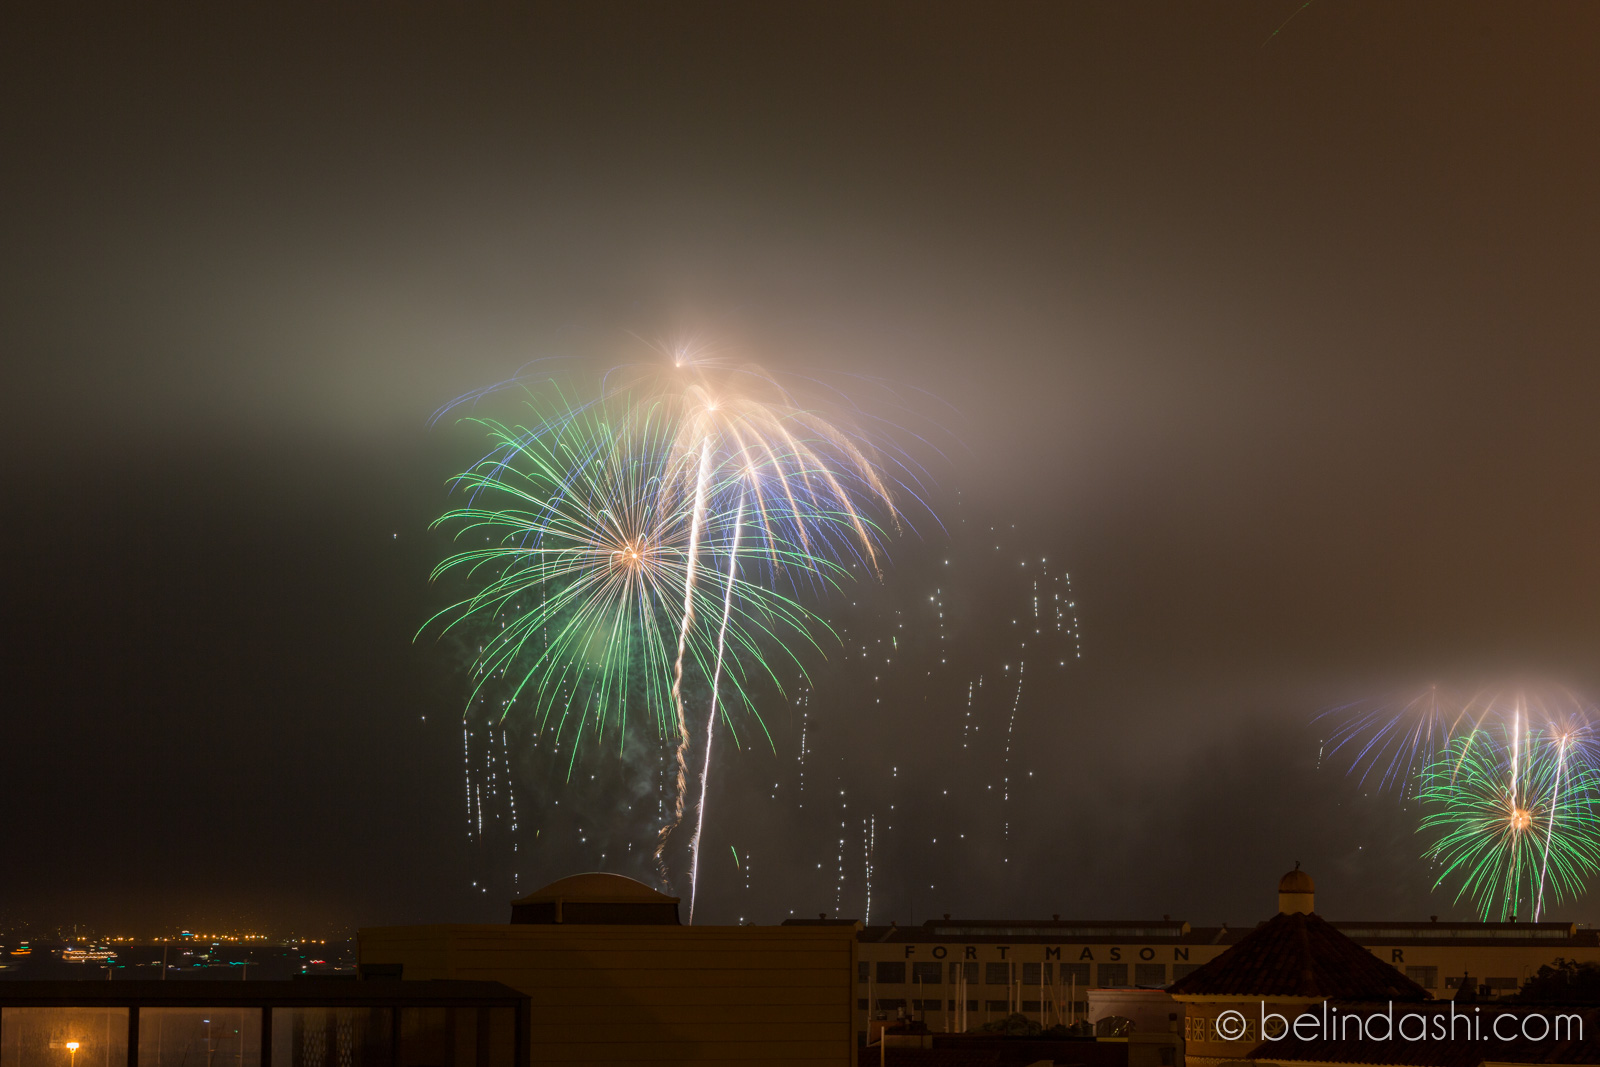 July 4th fireworks in San Francisco 2014-002, ISO100, 85mm, f/11, 15sec